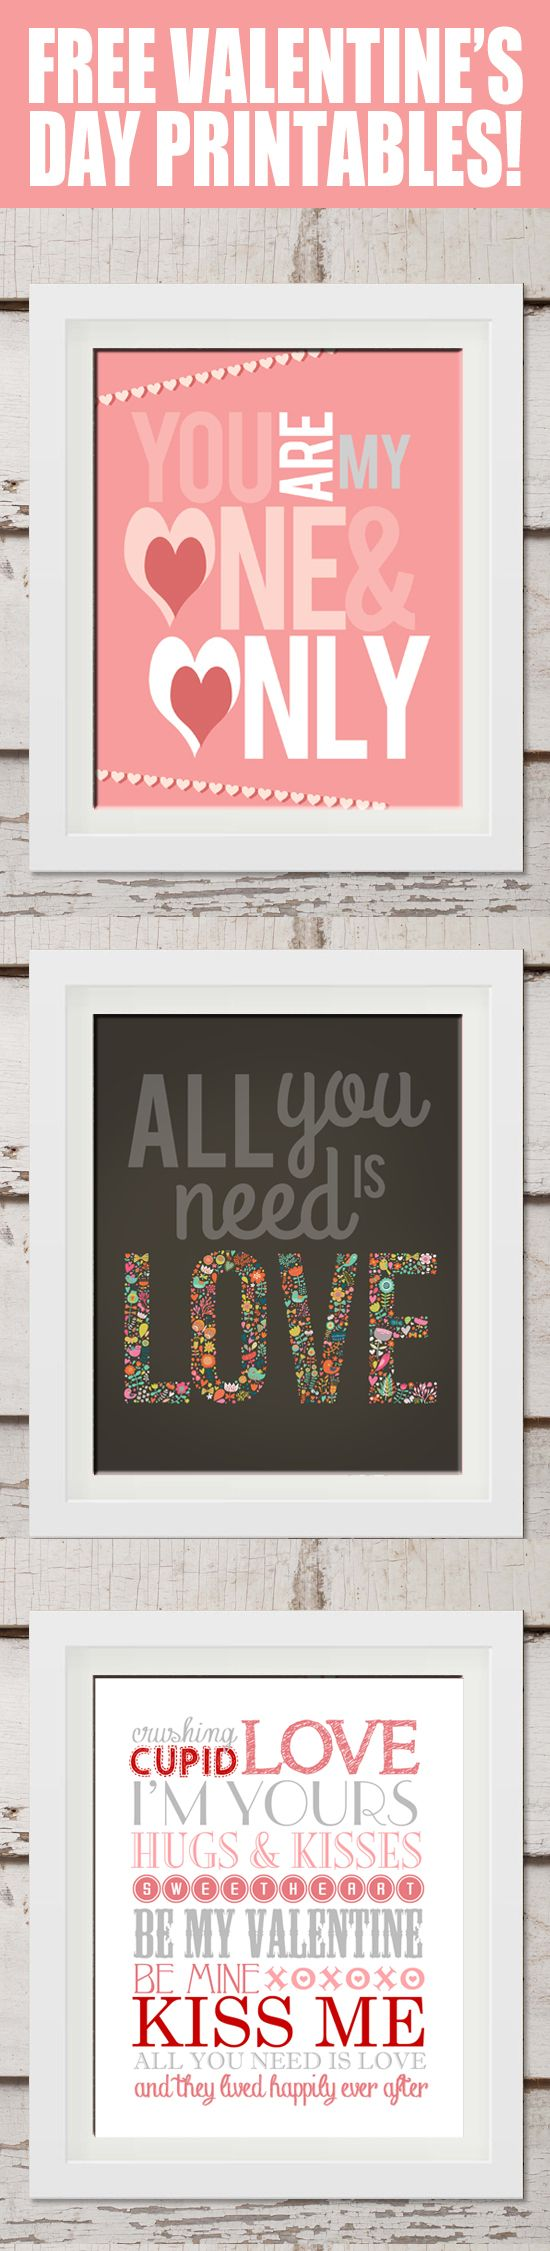 Free Valentines Day Printable Art from How to Nest for Less